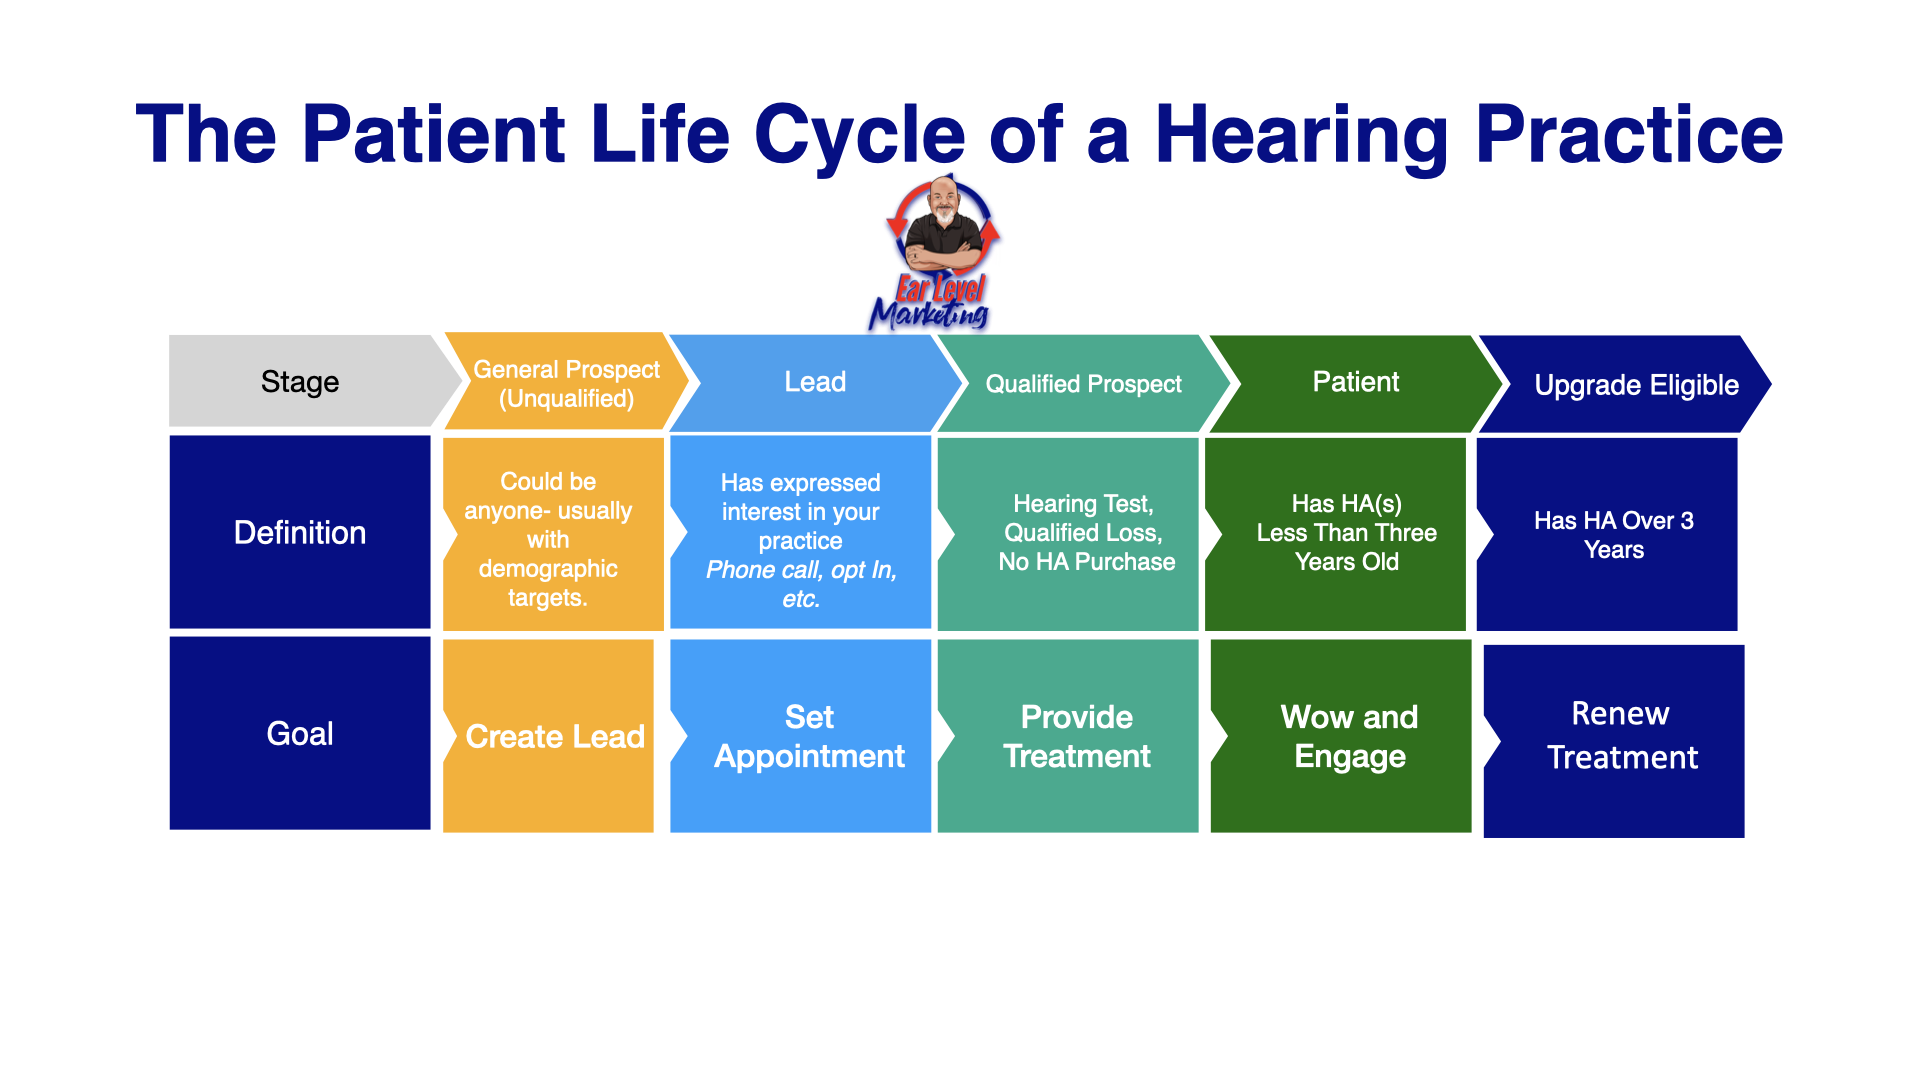 AN infographic displaying the stages of a patient life cycle.